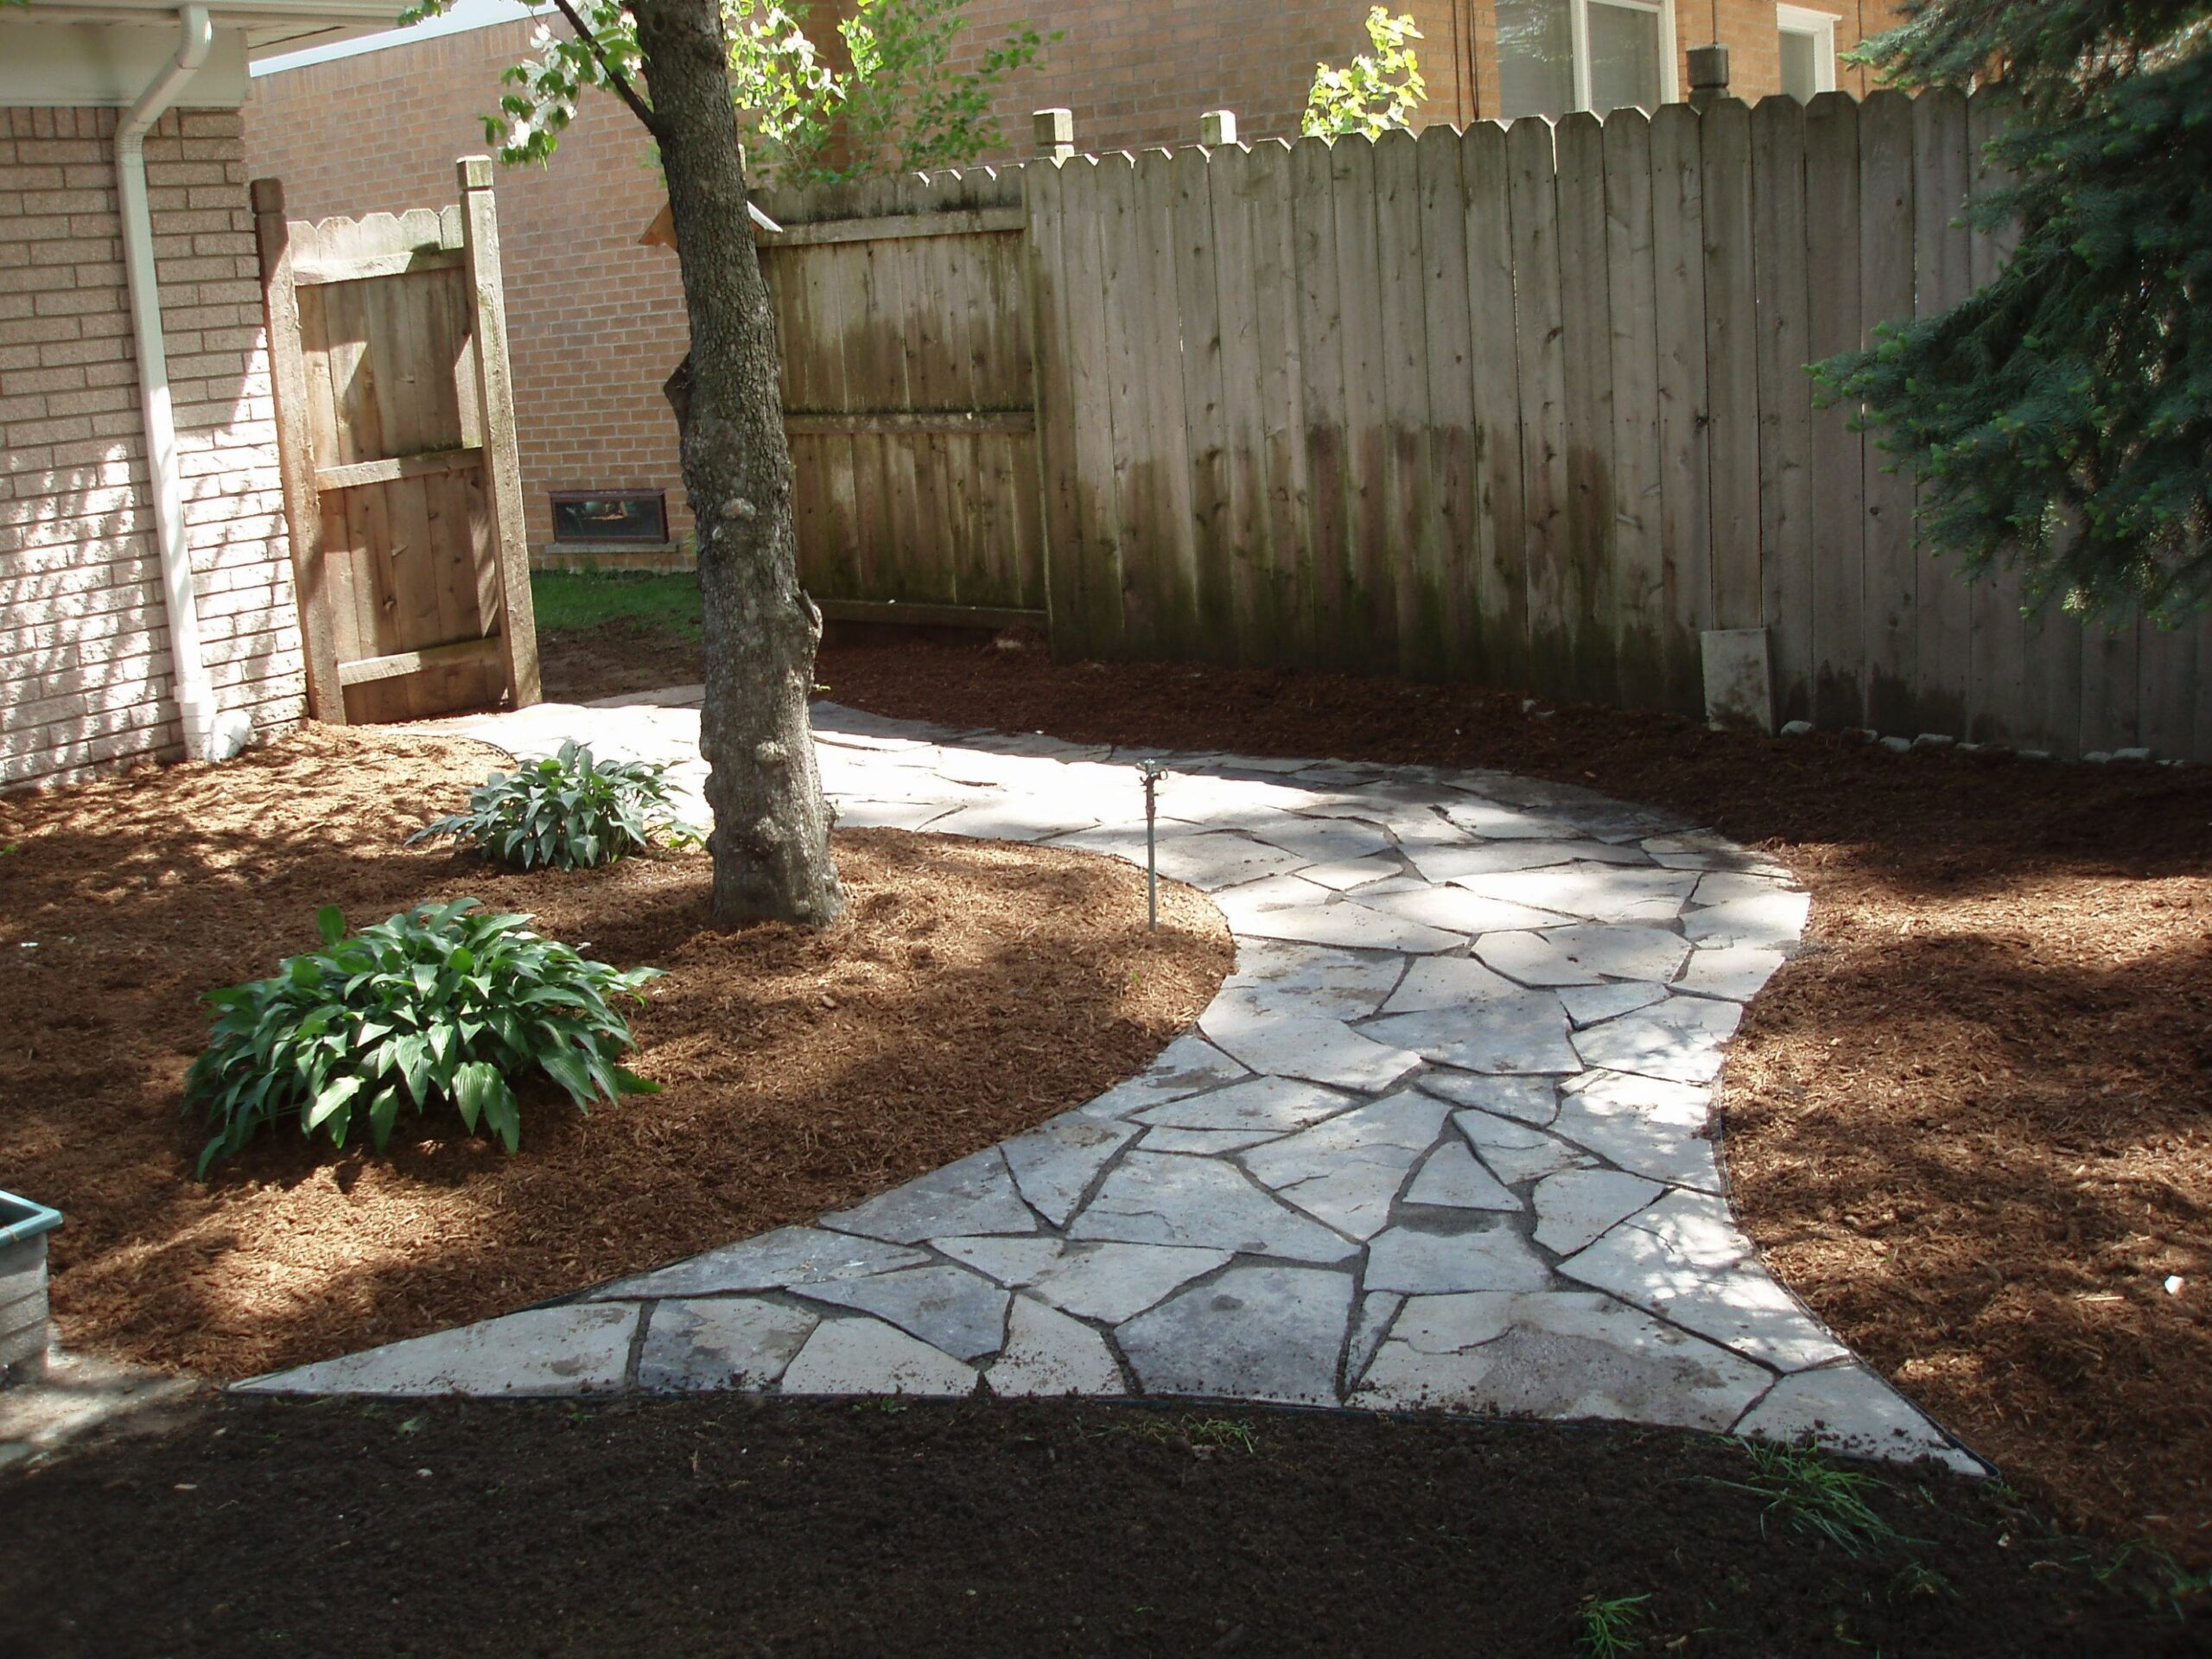 grassless backyard landscaping ideas | Mulch and Compost around ..